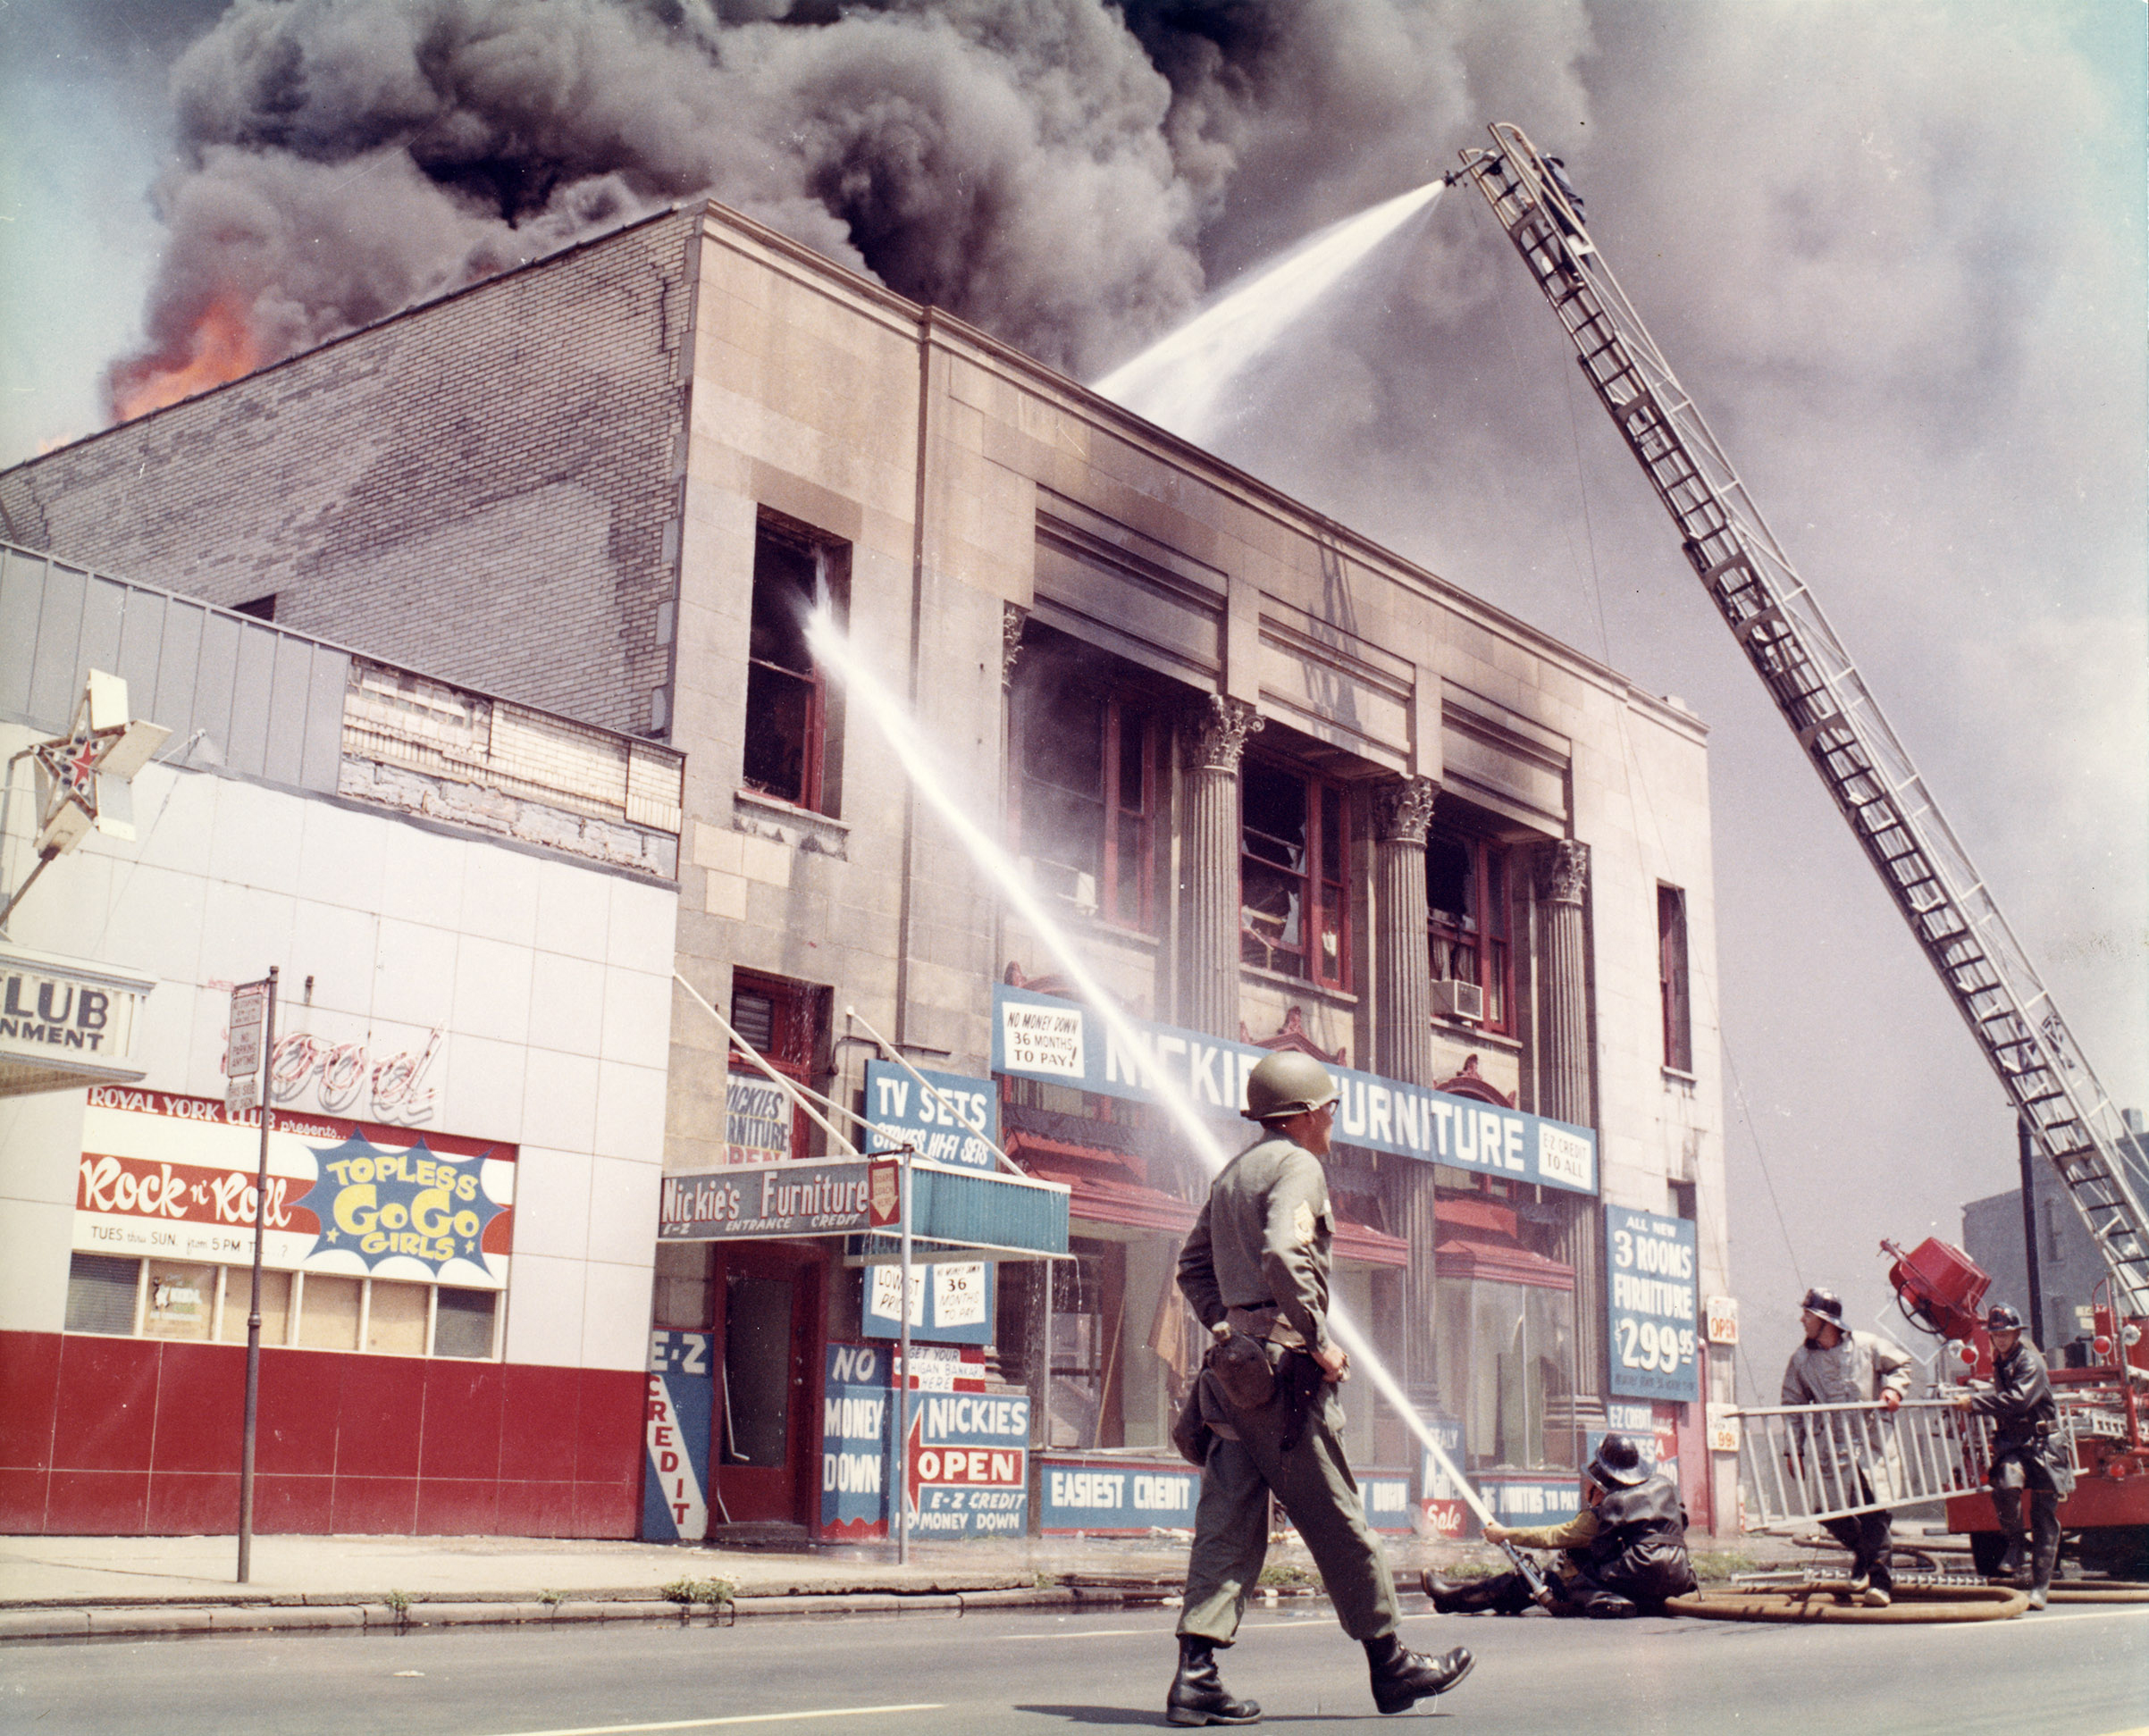 A U.S. Army soldier patrols the streets as Detroit firefighters suppress flames that have broken through the rooftop of a neighborhood furniture store.